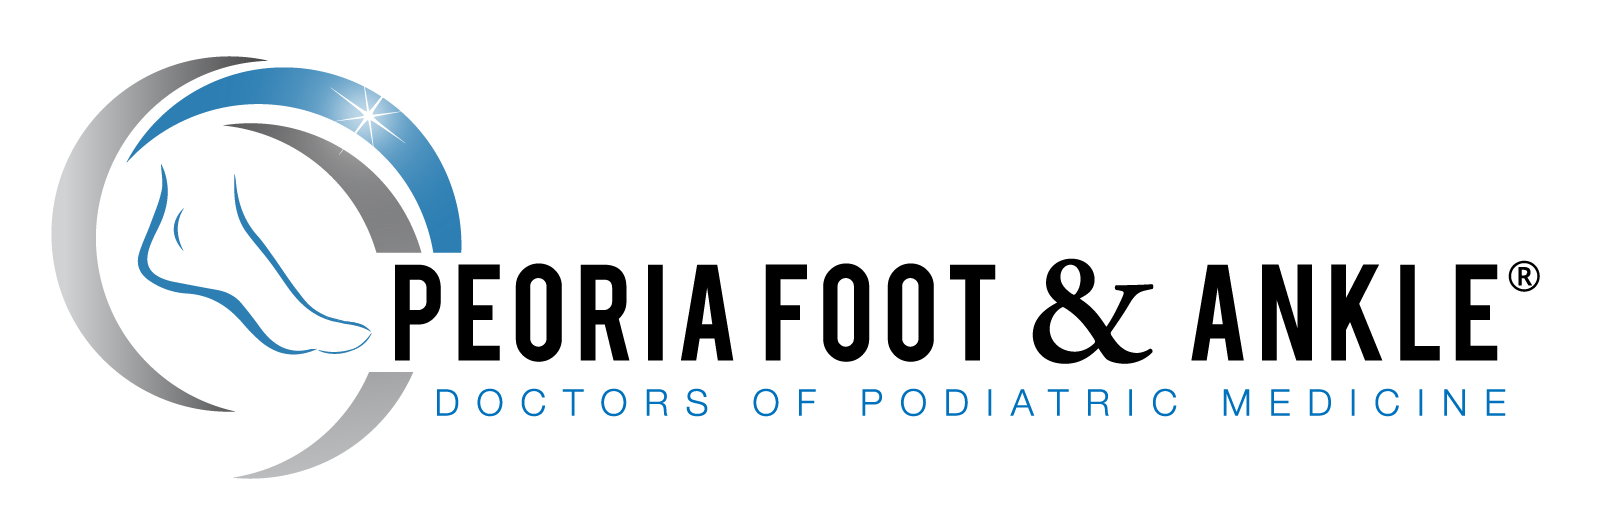 Podiatrist Peoria, AZ 85381, Podiatrist Wickenburg, AZ 85390, Foot Doctor & Ankle Specialist near Surprise, AZ, serving Suncity, AZ, Glendale, AZ